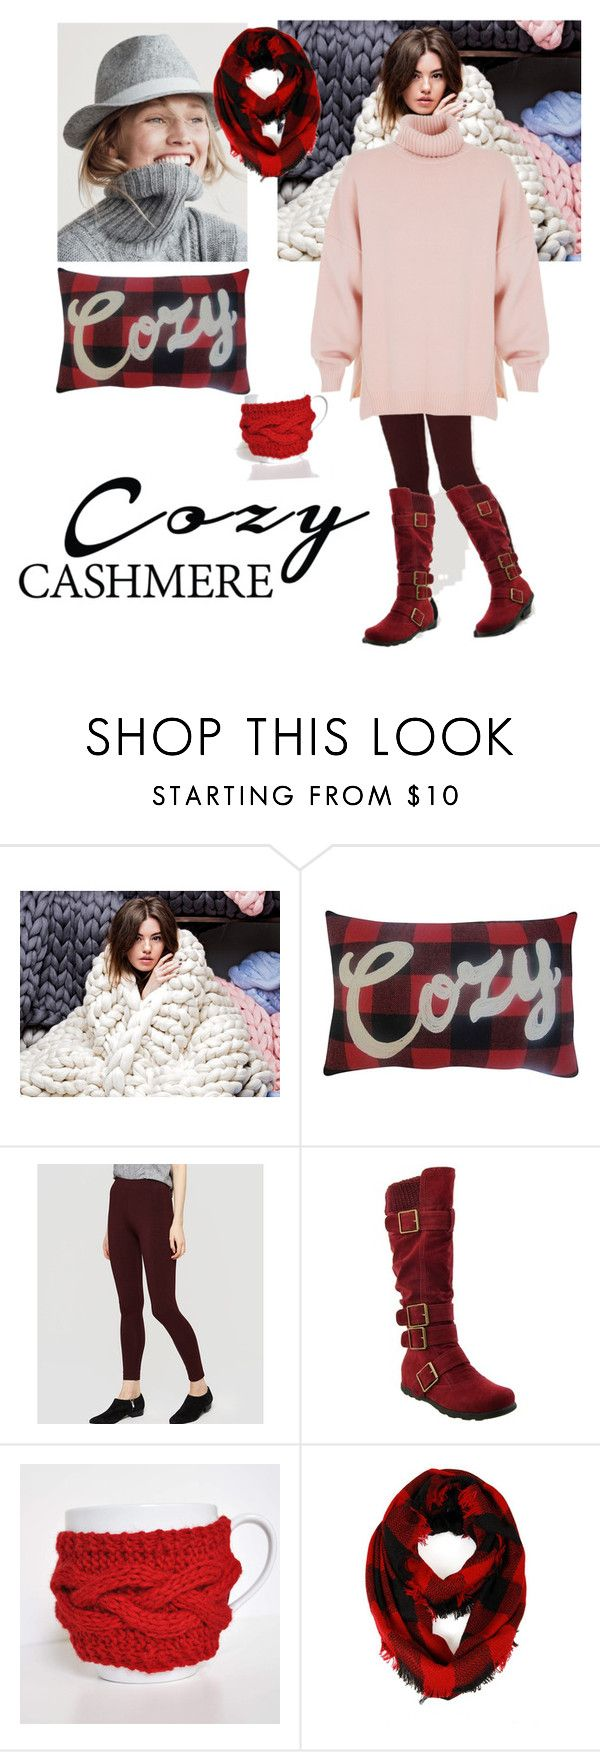 """""""Cozy Cashmere"""" by amiraahmetovic ❤ liked on Polyvore featuring St. Nicholas Square, J.Crew, LOFT, Cozy by LuLu and TIBI"""